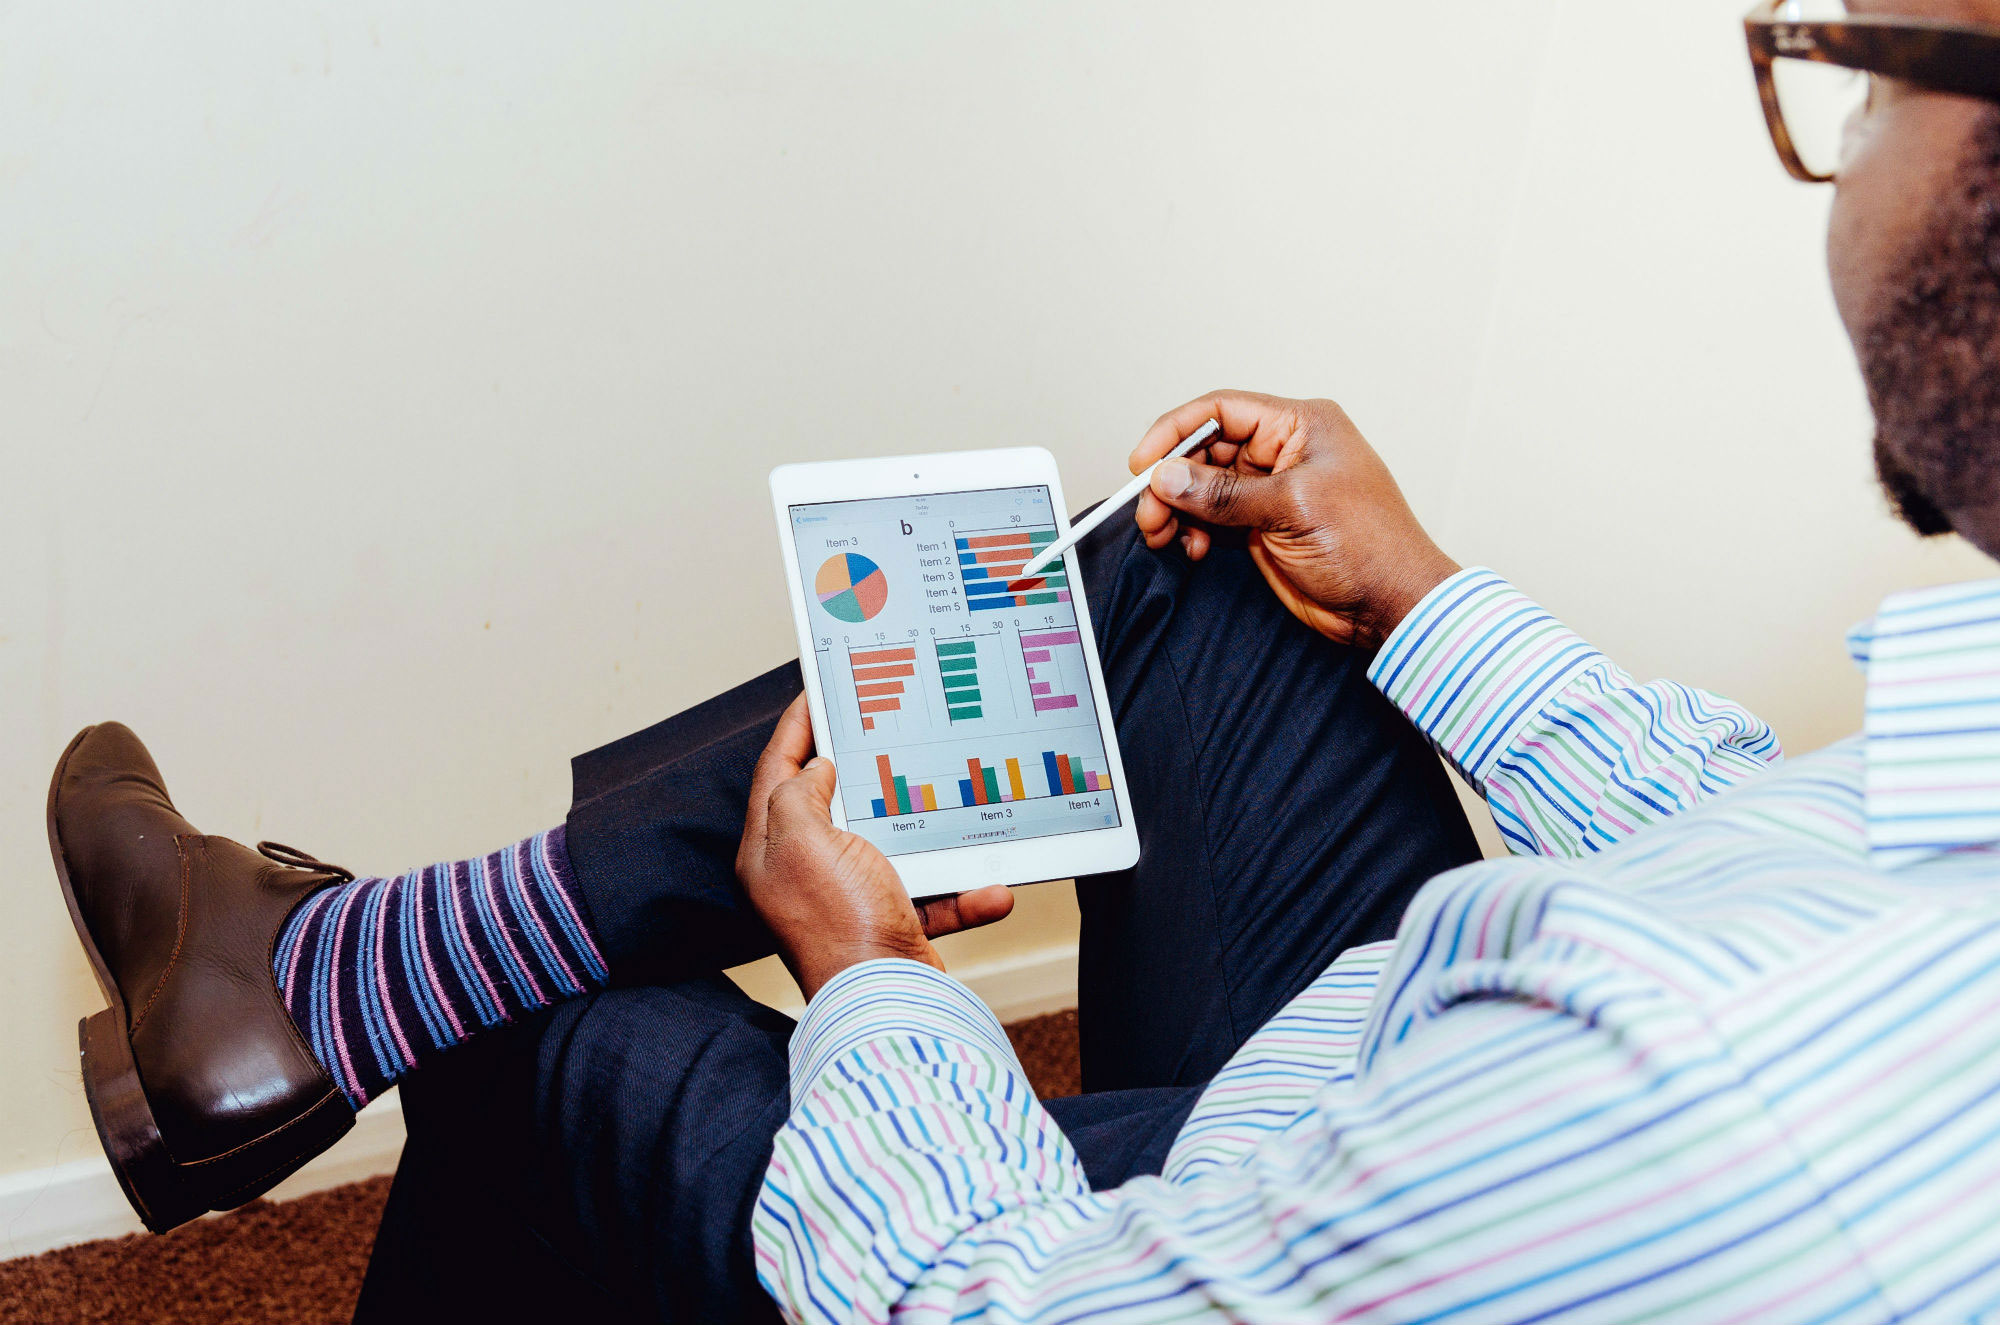 Reap the benefits of Business Intelligence